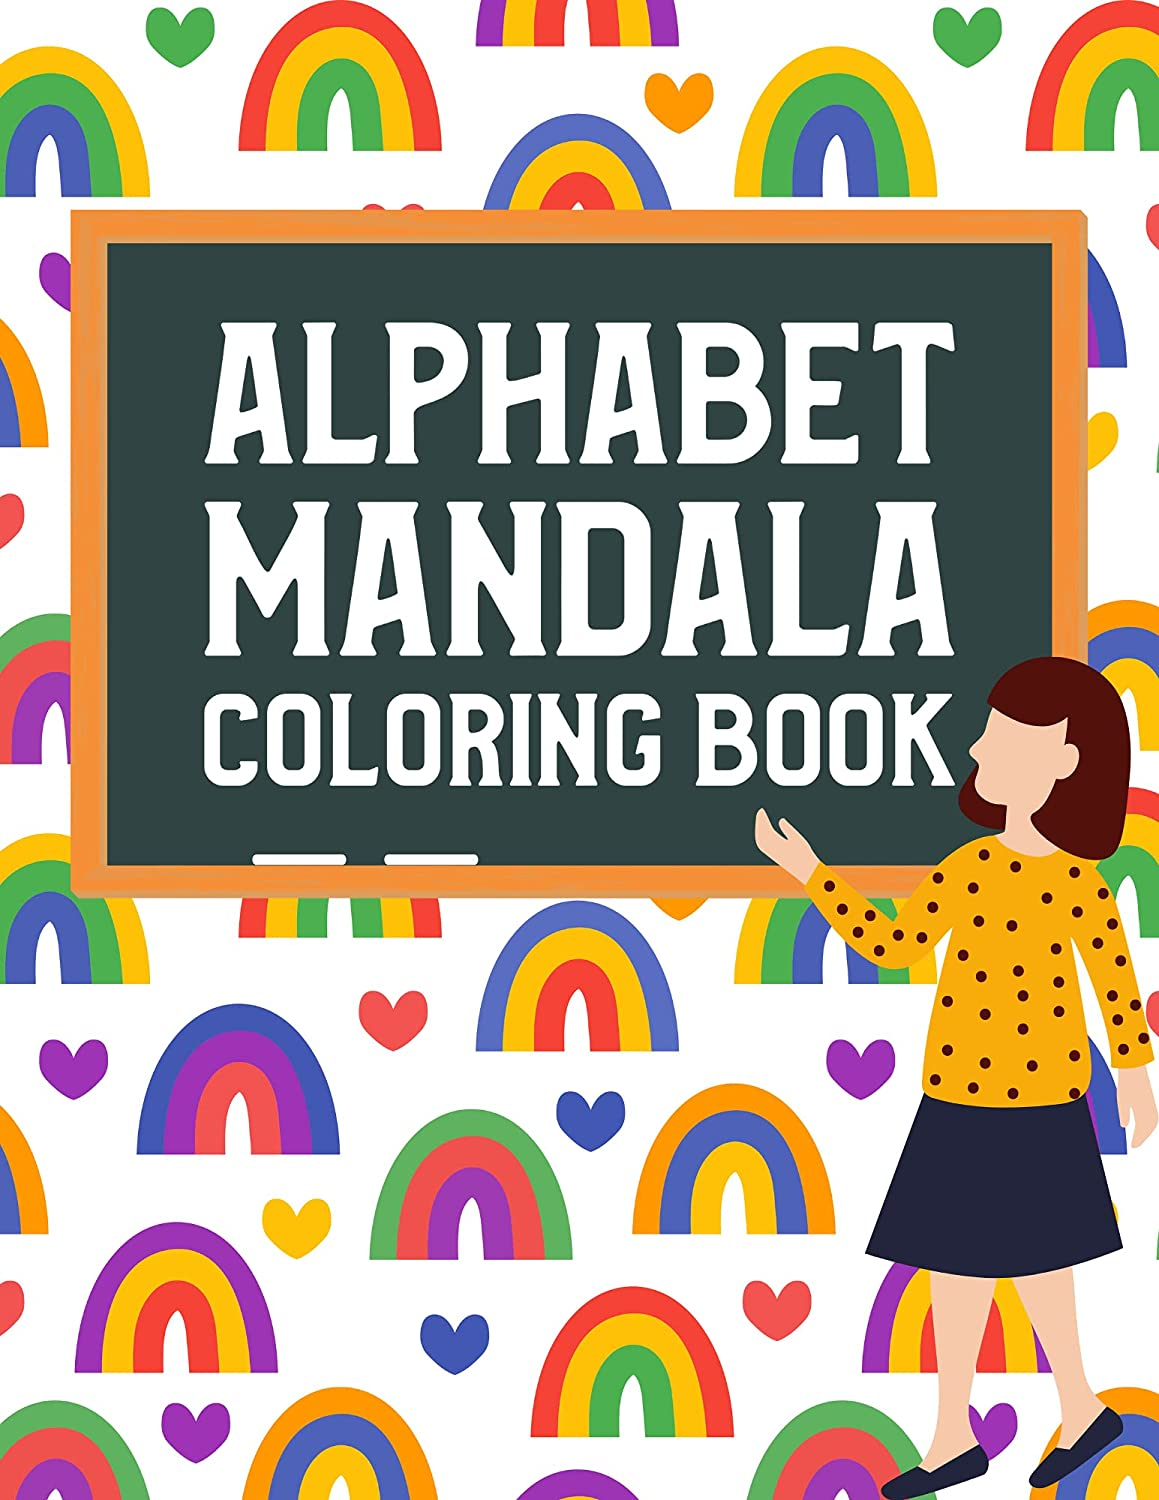 Alphabet Mandala Outstanding Coloring Book for Toddlers Children Kids G Boys 1 year warranty